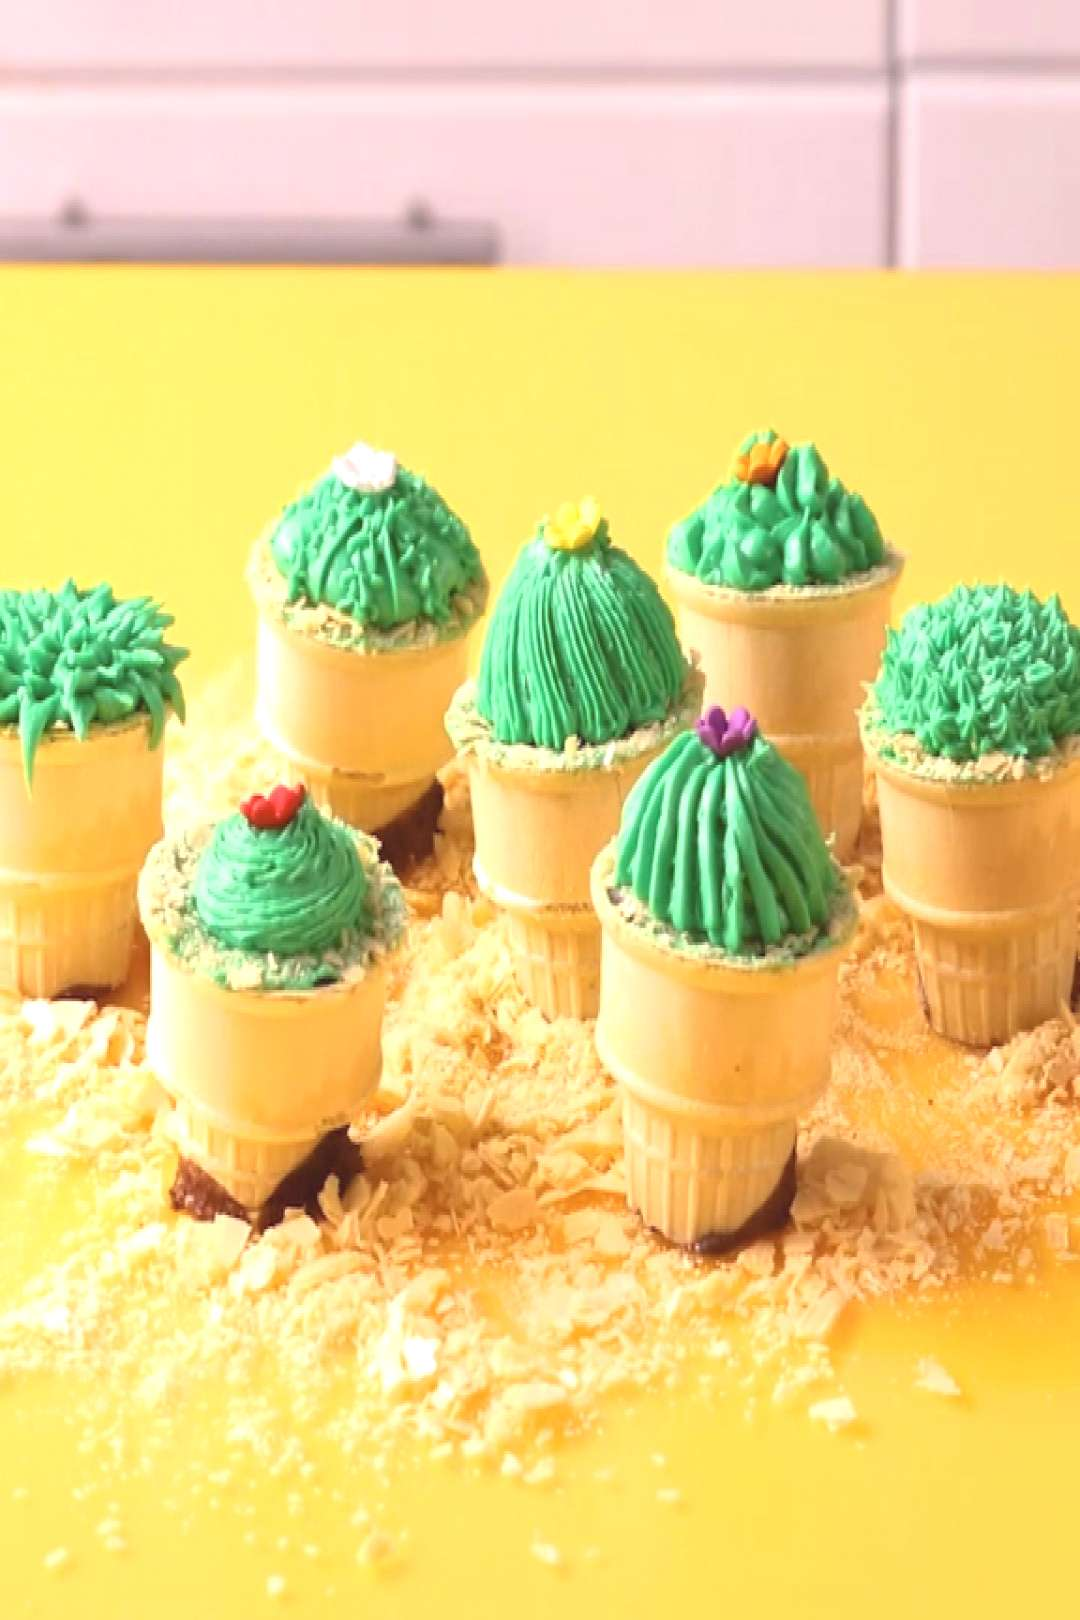 Potted Cactus Cakes Potted Cactus Cakes,